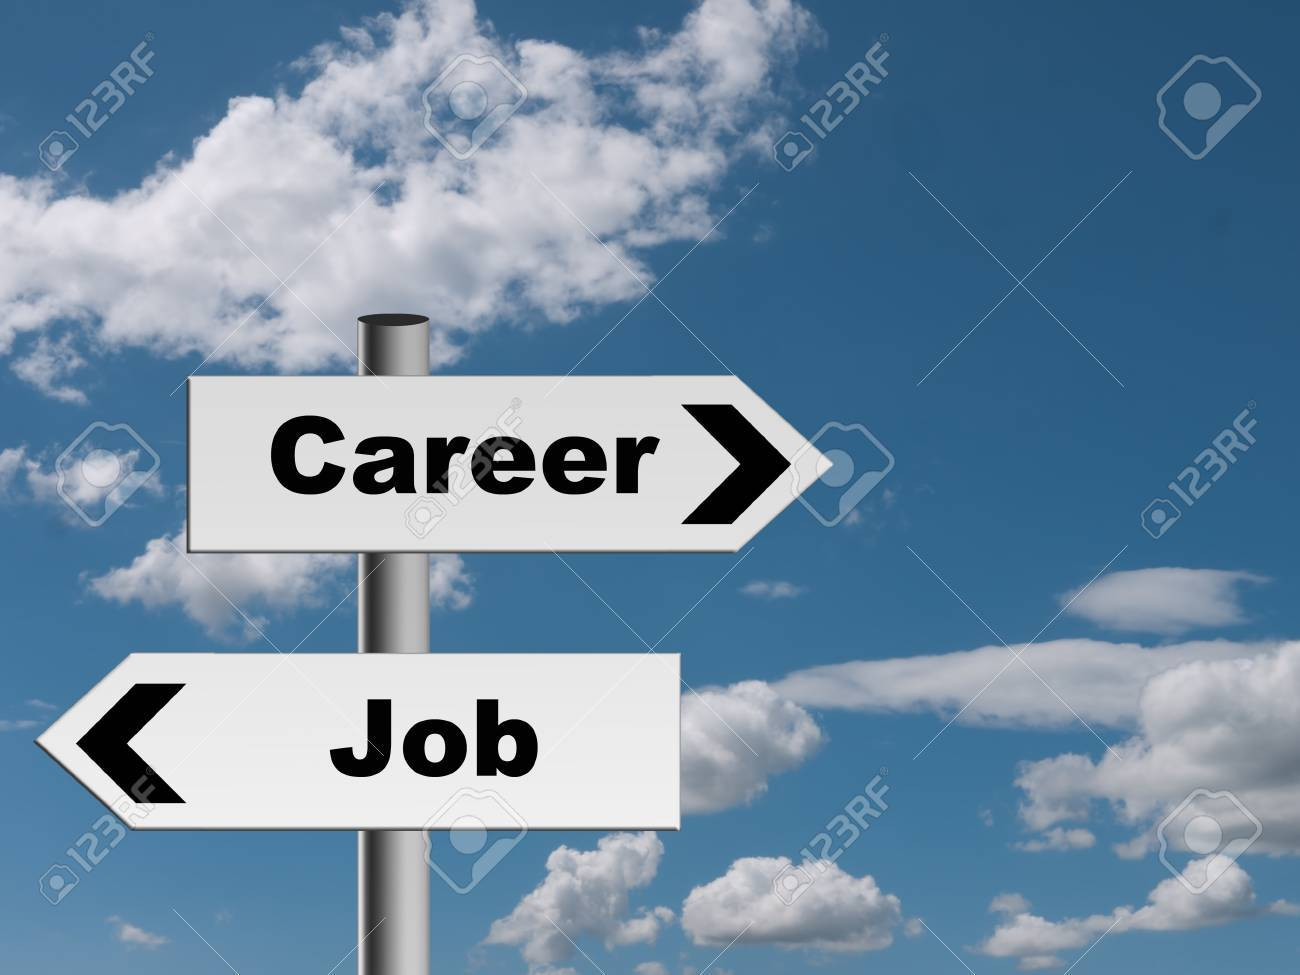 career or job decision choice metaphor sign stock photo picture career or job decision choice metaphor sign stock photo 19683374